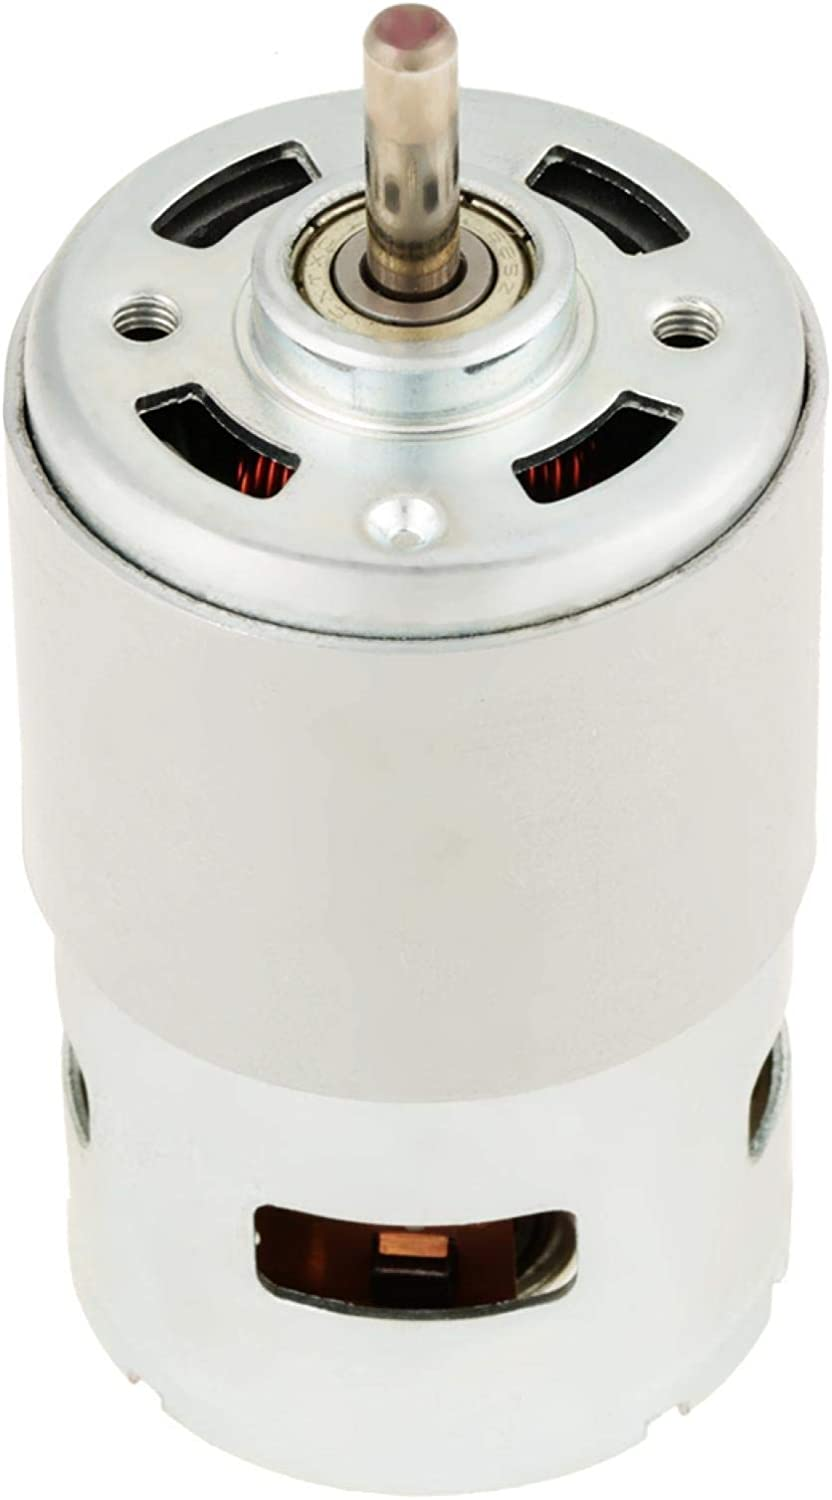 DC Motor 12000RPM 795 12V Ball Speed for Bombing new work Machines Curtain Over item handling ☆ Screw